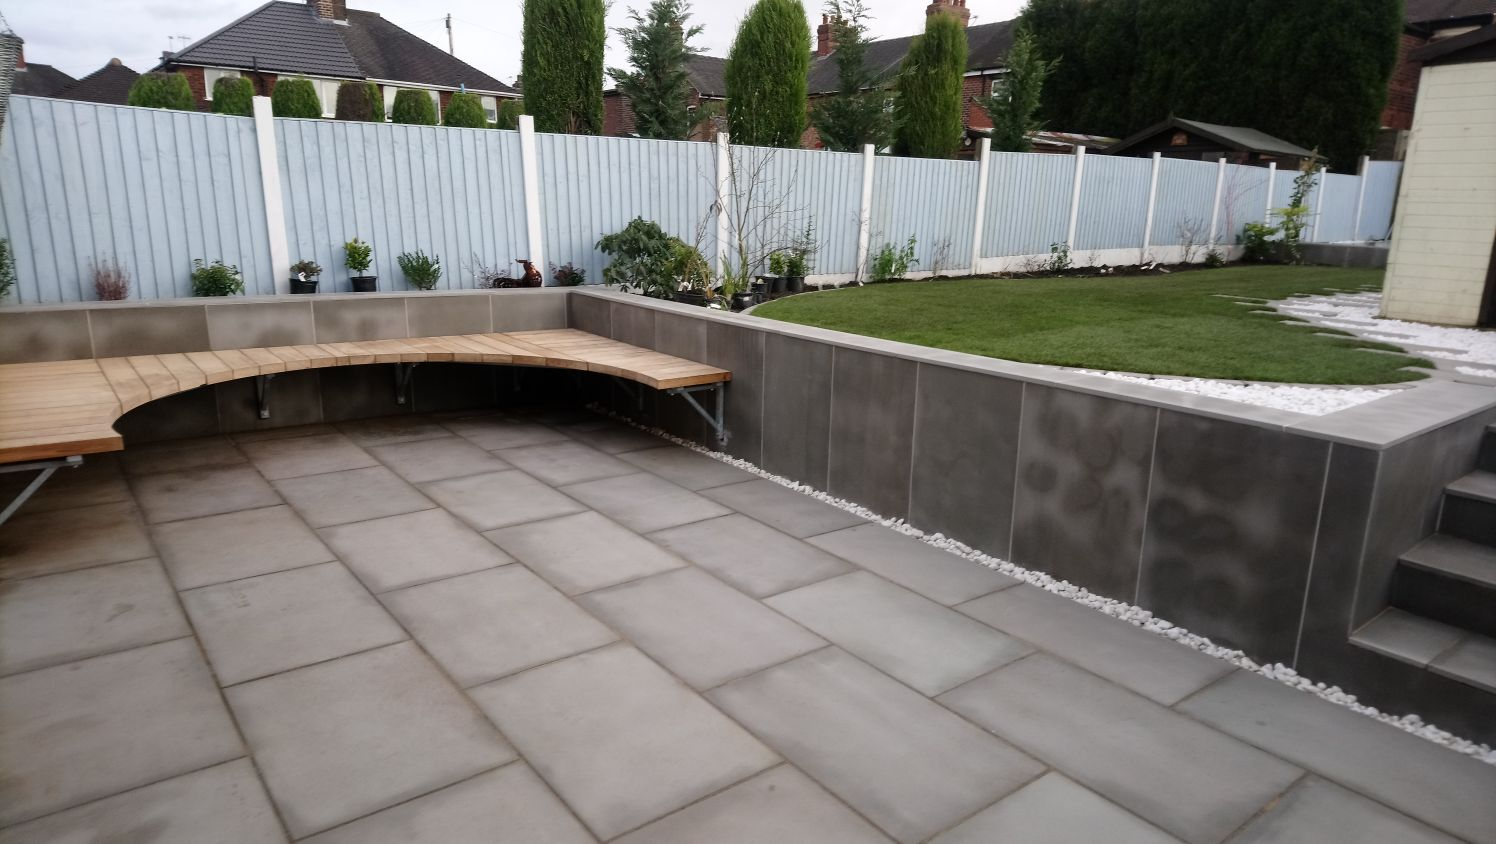 Landscape Gardener in Knutsford - Professional Landscaping ...